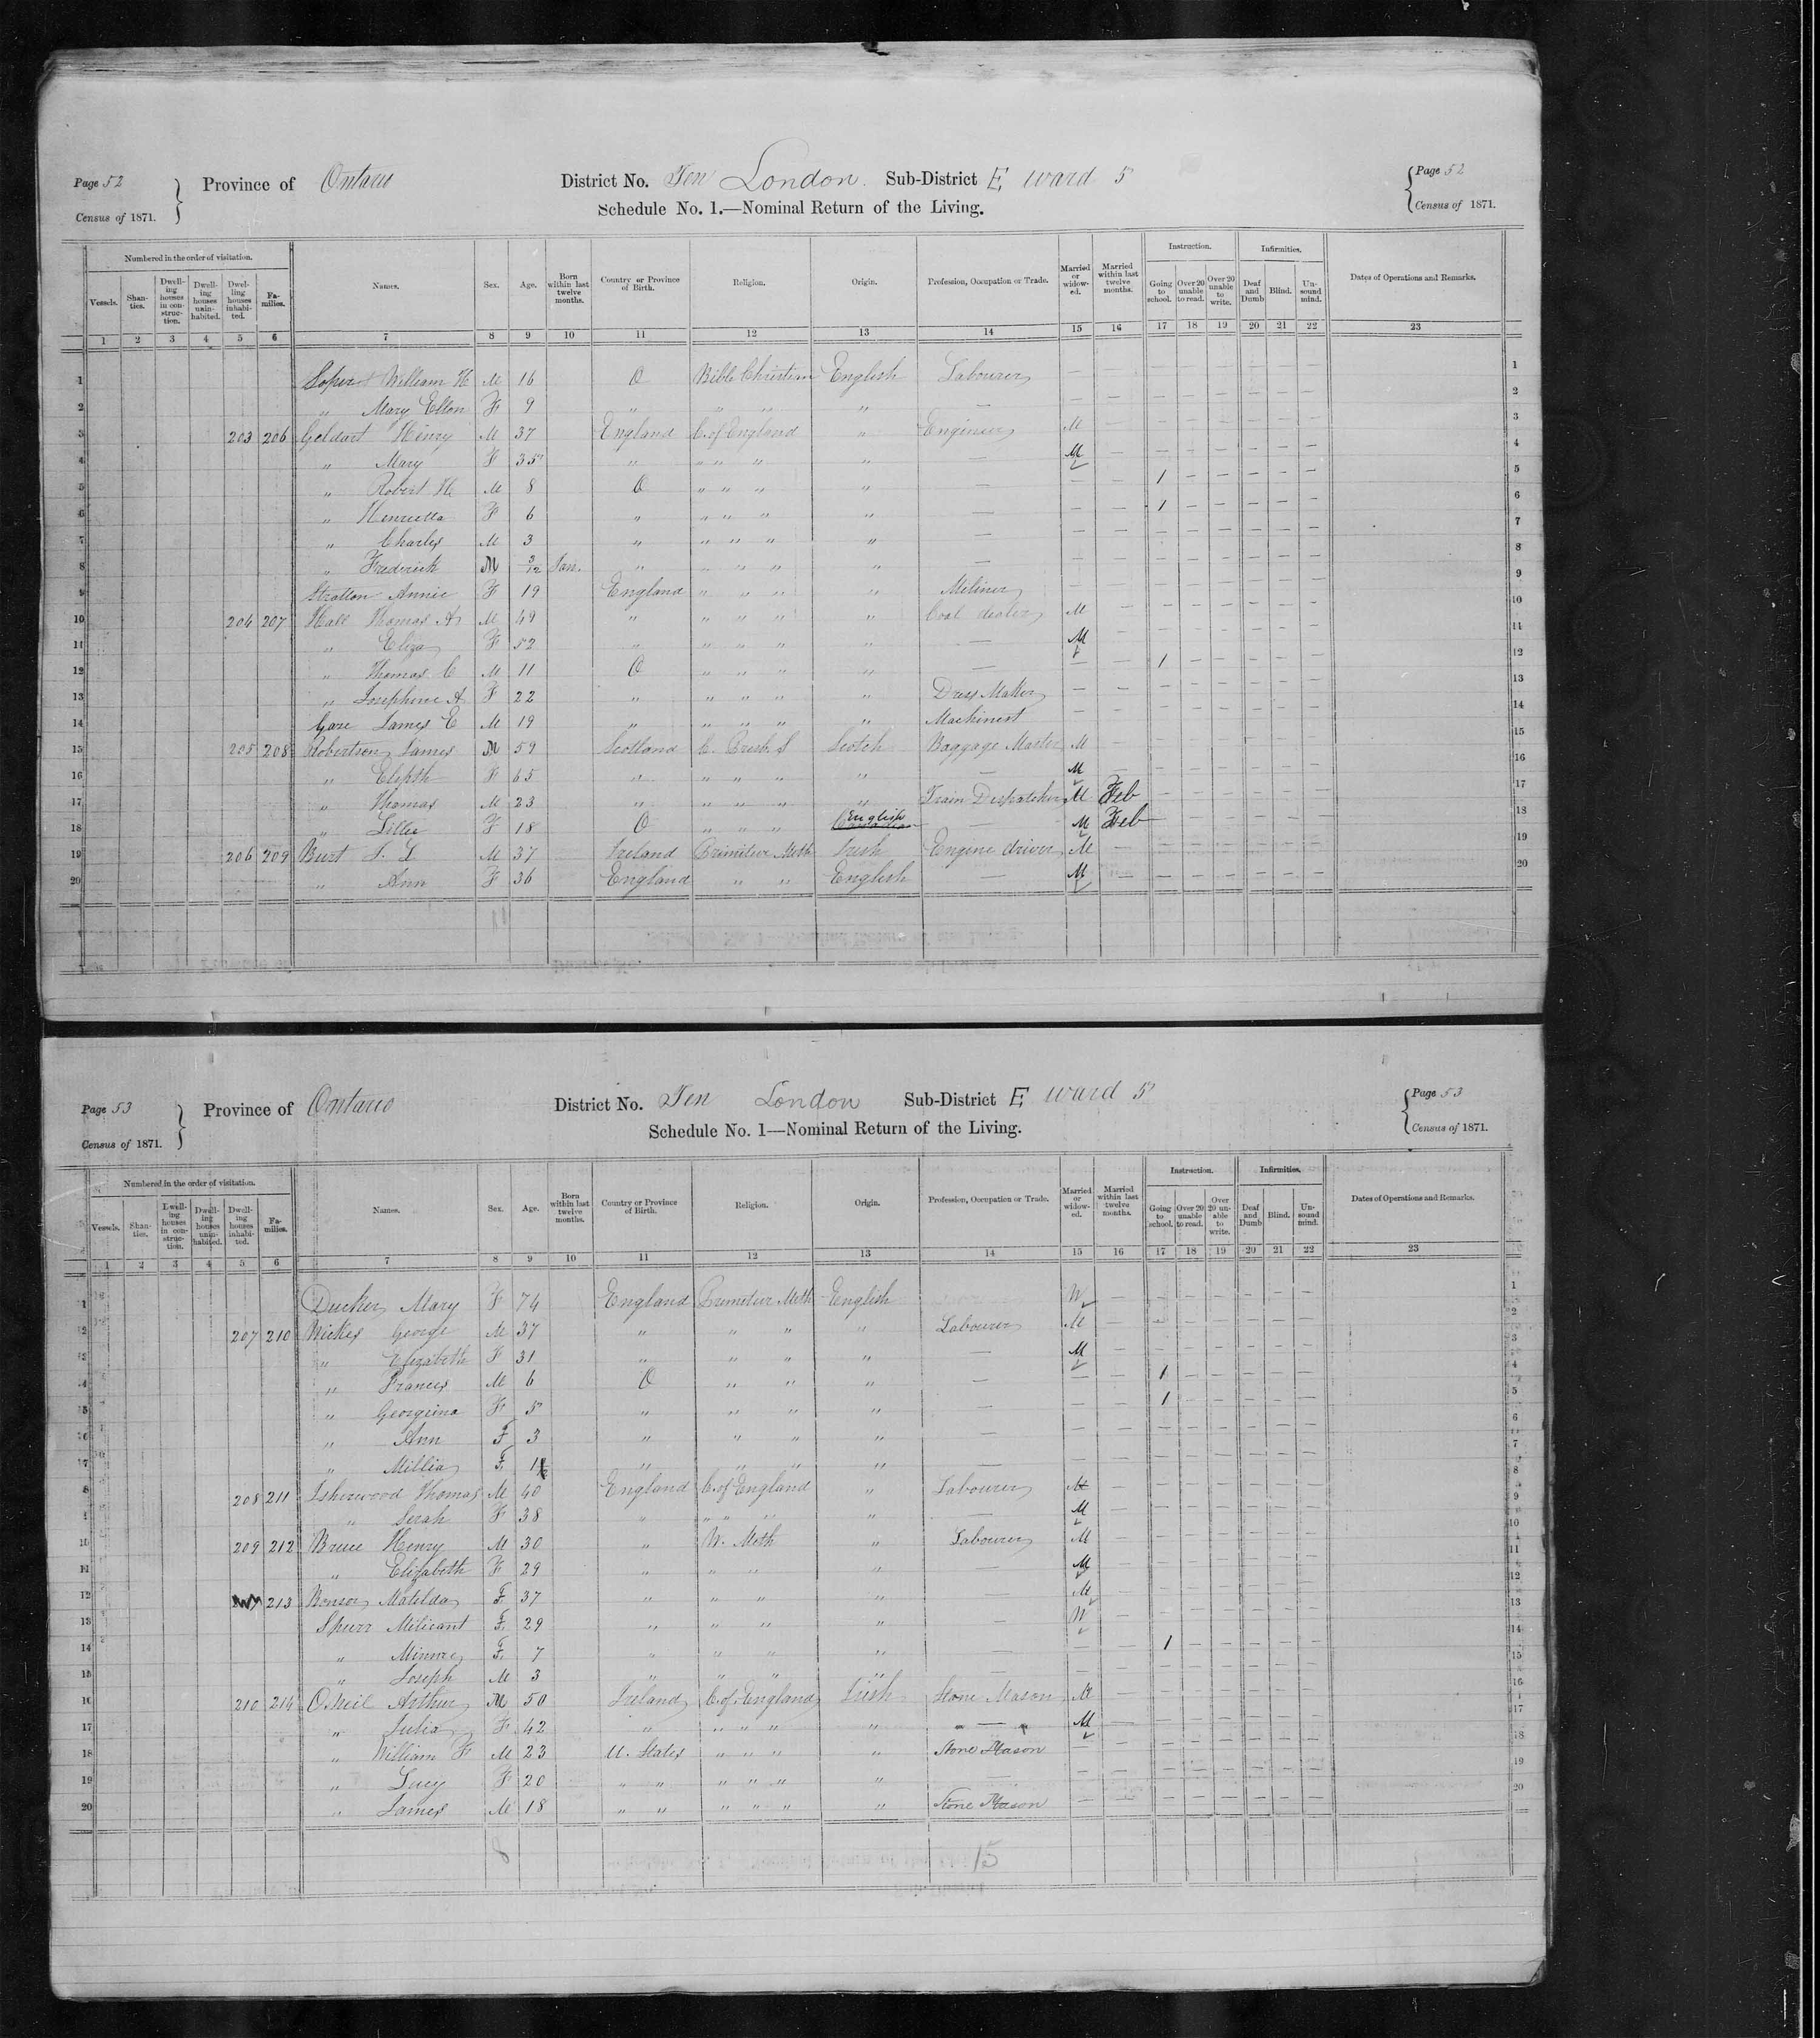 Title: Census of Canada, 1871 - Mikan Number: 142105 - Microform: c-9906